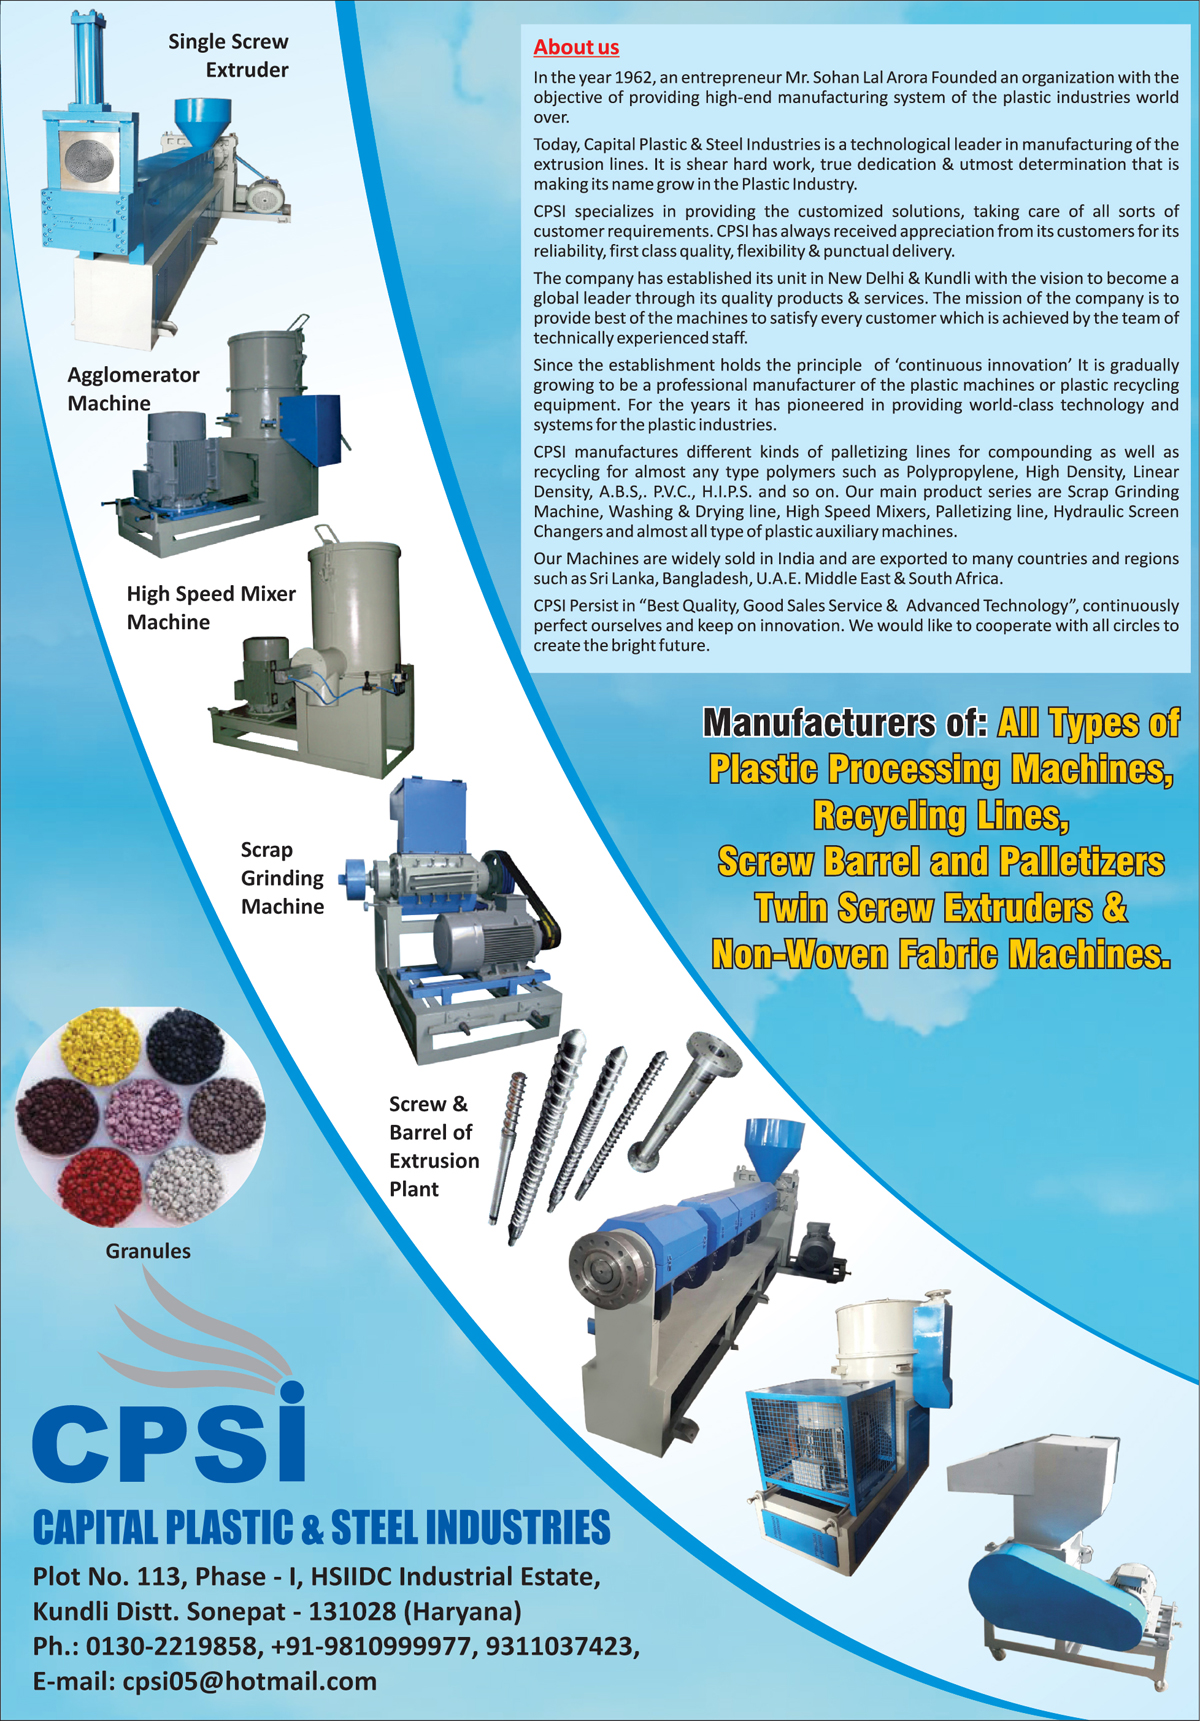 Single Screw Extruder, Agglomerator Machines, Mixer For Plastics, Mixer Machine For Plastics, Scrap Grinding Machines, Scrap Grinder Machines, Extrusion Plant Screws, Extrusion Plant Barrels, Plastic Processing Machines, Recycling Lines, Twin Screw Extruder, Non Woven Fabric Machines, Plastic Washing Lines, Plastic Drying Lines, Palletizing Line for Plastic, Hydraulic Screen Changer For Plastic, Plastic Auxiliary Machines,Extruder, Mixer Machines, Screw Extrusion Plants, Barrel Extrusion Plants, Fabric Machines, Woven Fabric Machines